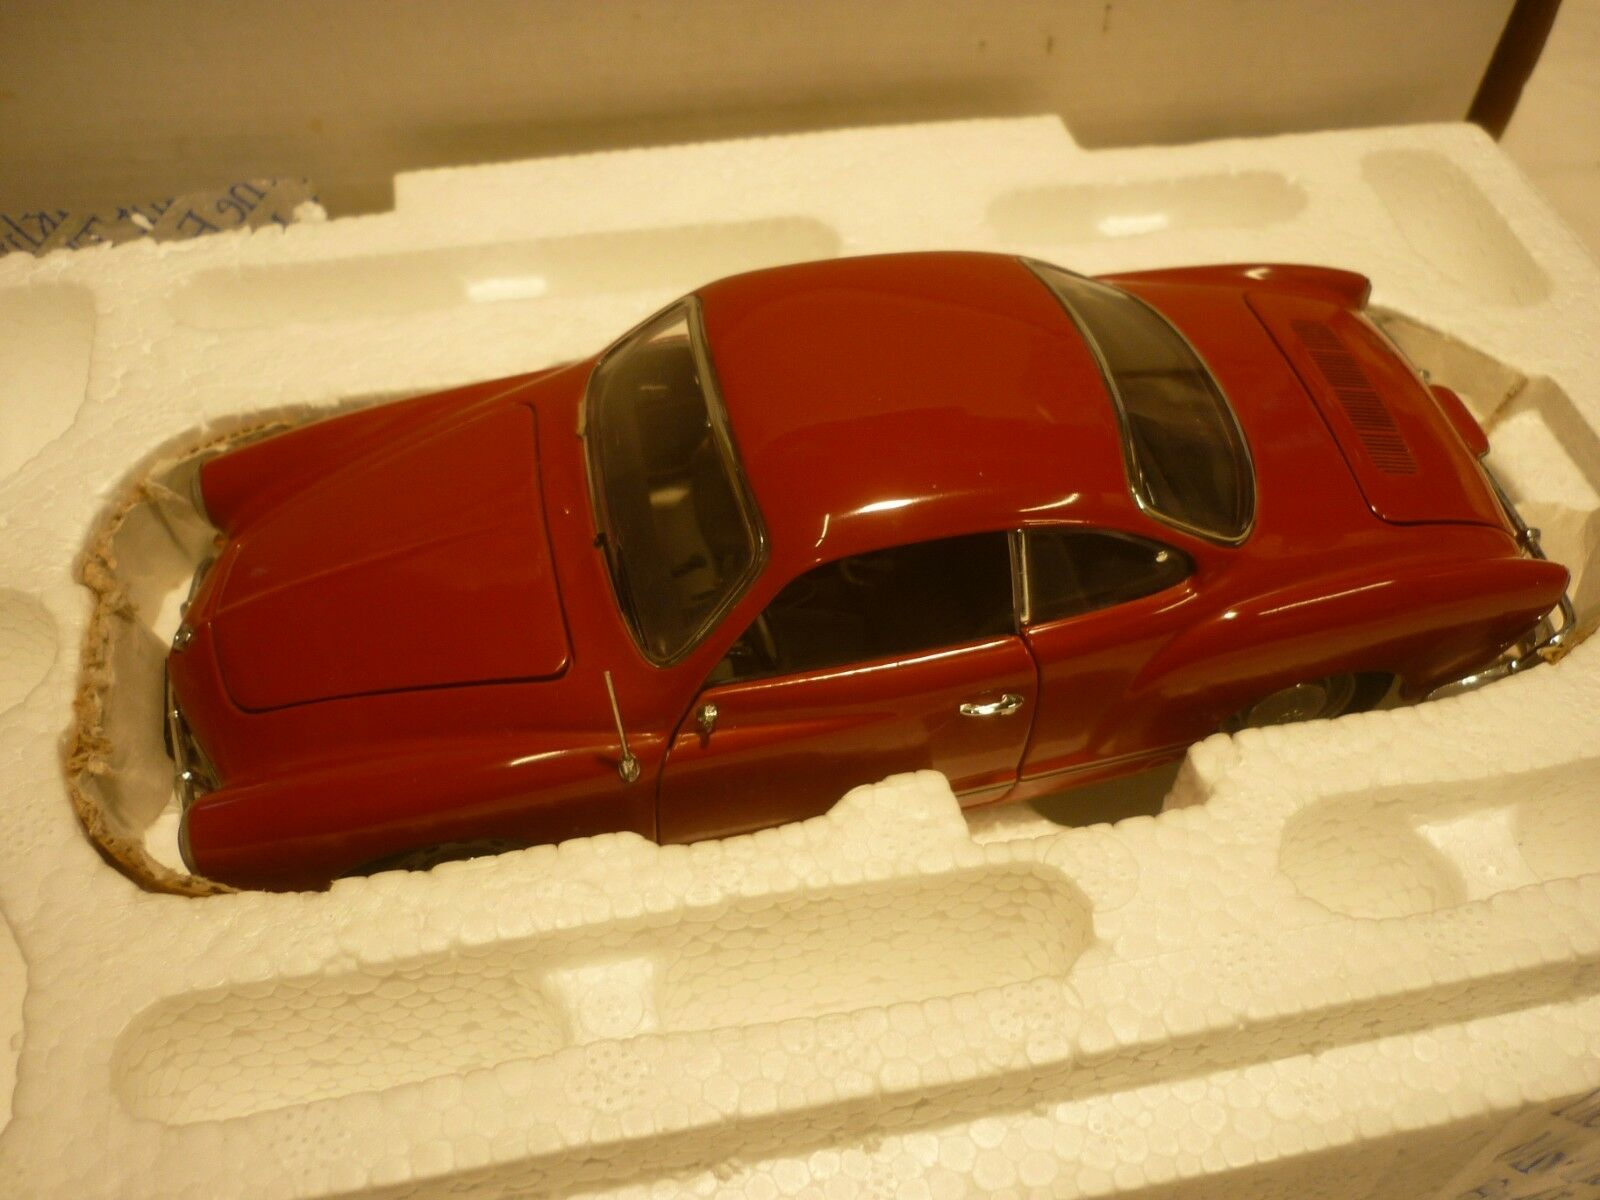 A Franklin mint scale model car of a 1967 Volkswagen karmann GHIA, boxed